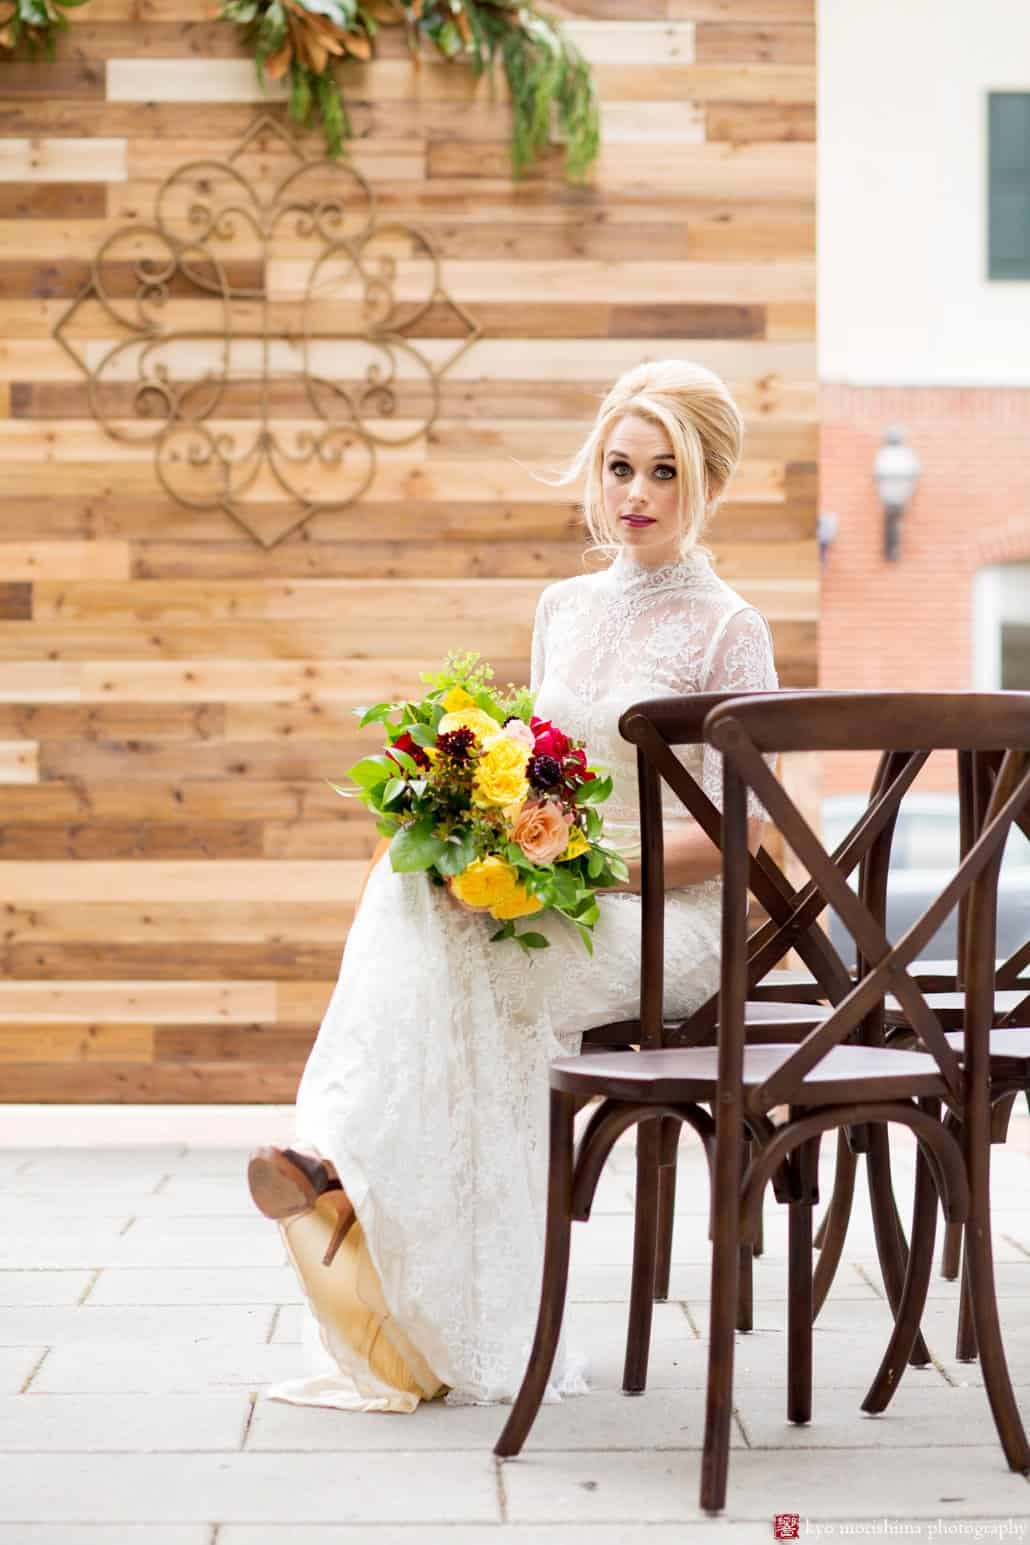 Madmen wedding styled shoot at the Nassau Inn. Bride wearing BHLDN Bridgette wedding gown with bouquet by Kristin Rockhill of Details of I Do, hair by Letitia Kakas, makeup by Gena Verde Longo, photographed by Kyo Morishima